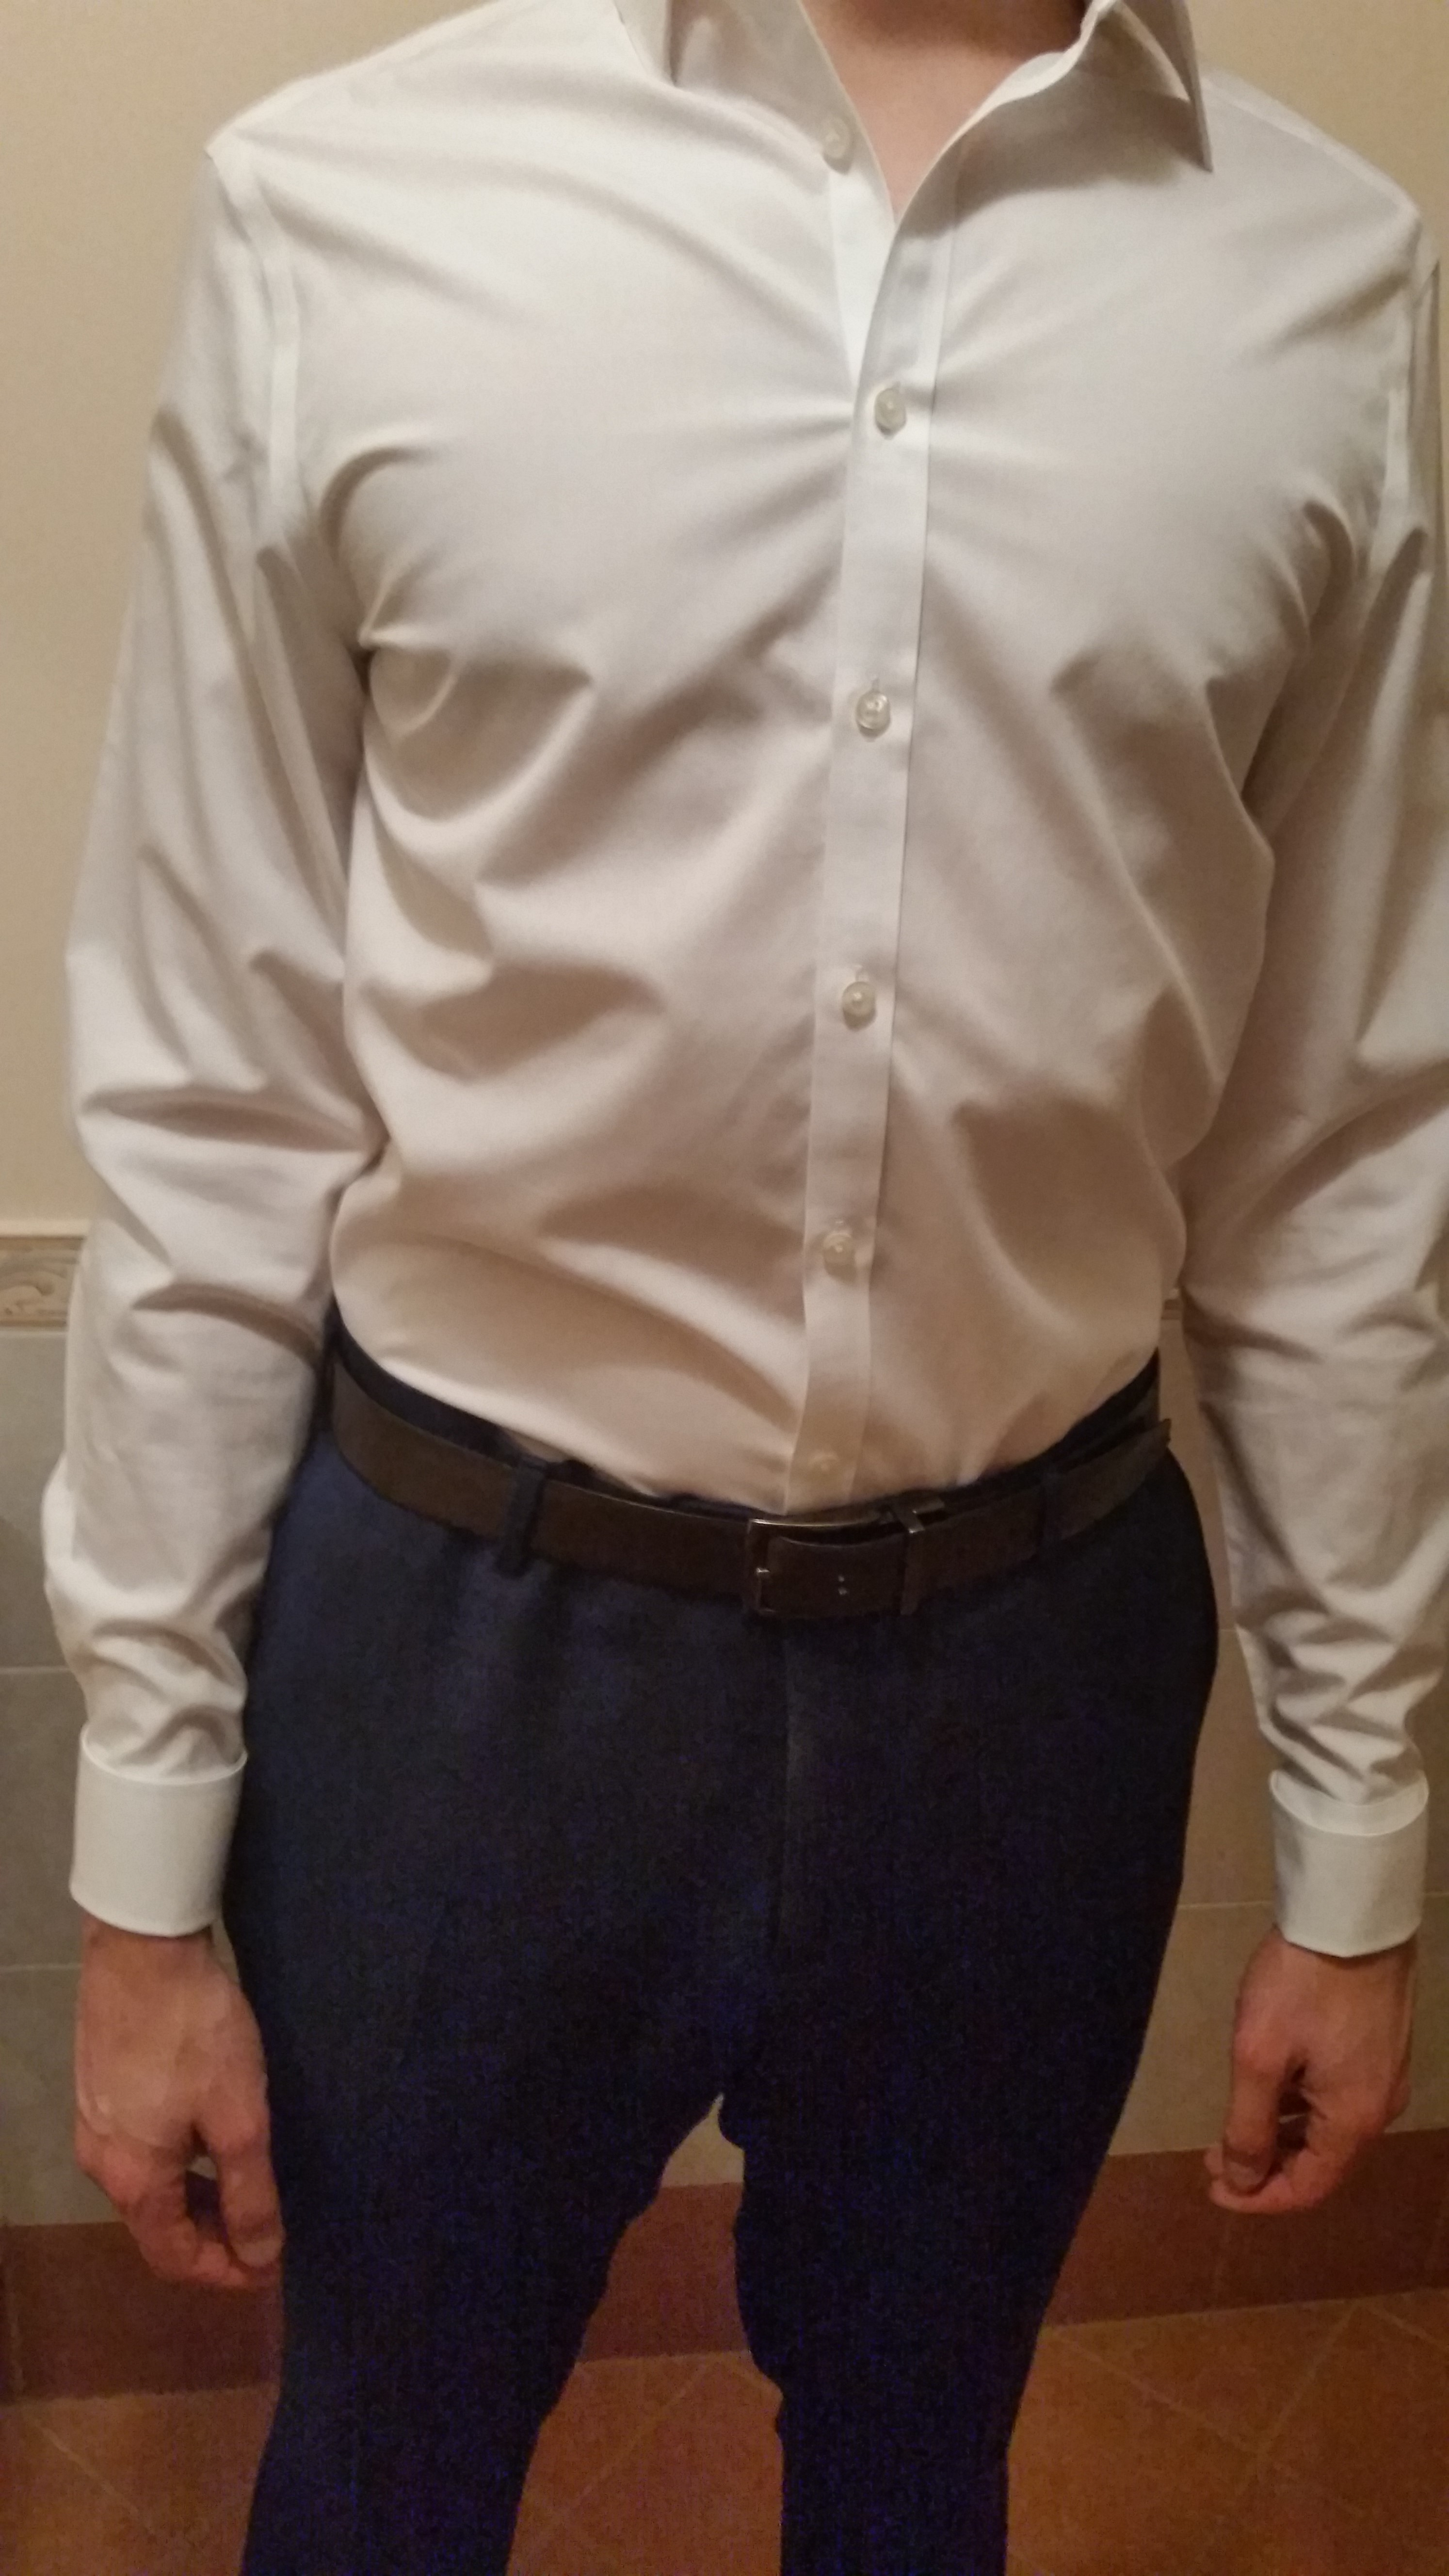 e903fe16e180 Shirt Review - Charles Tyrwhitt Slim and Extra Slim Fit - The Art of ...